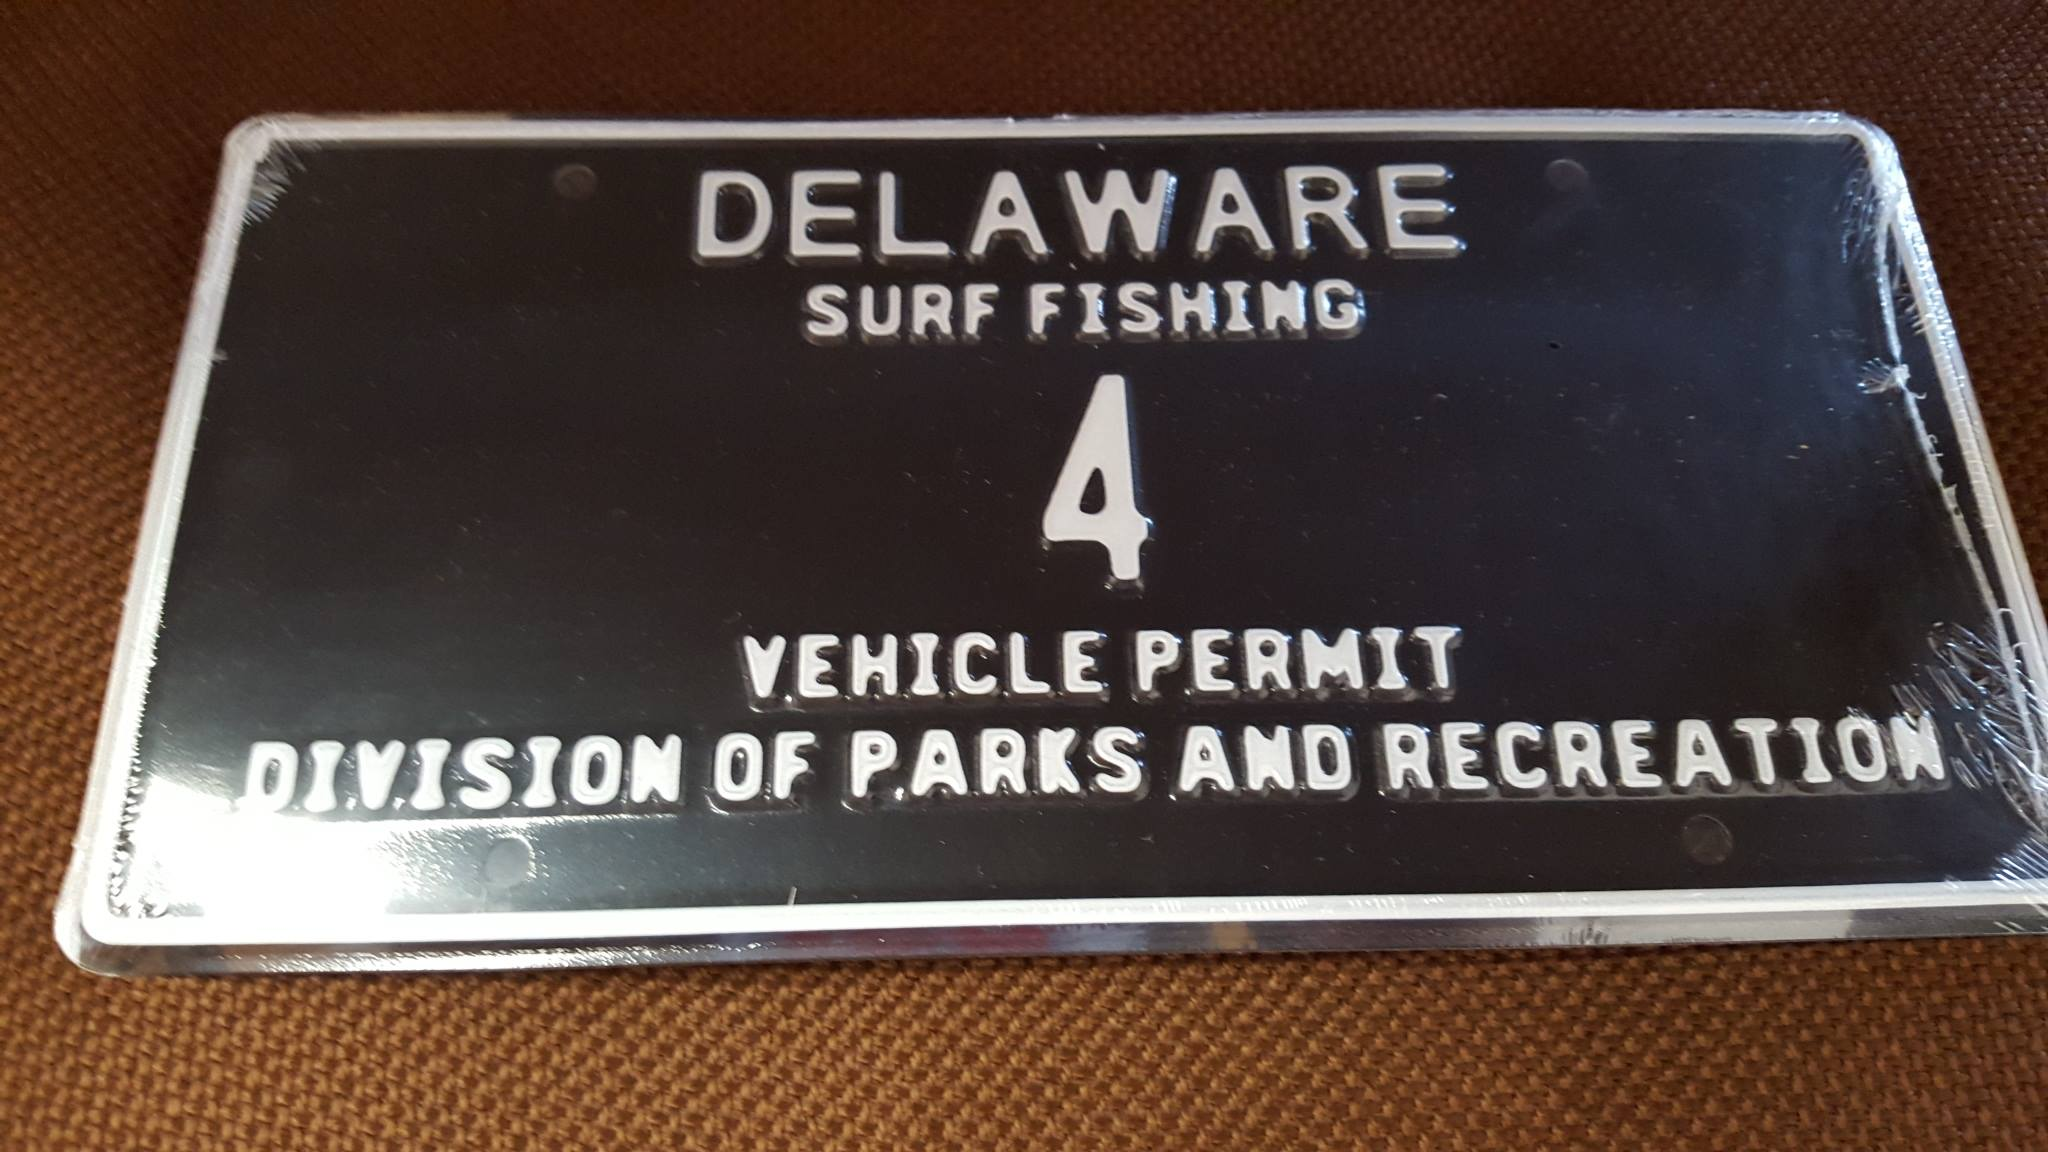 Delaware Surf Fishing tag number 4, low digiti surf tags, sussex county, state parks,beach tags, drive on access, ORV permits,